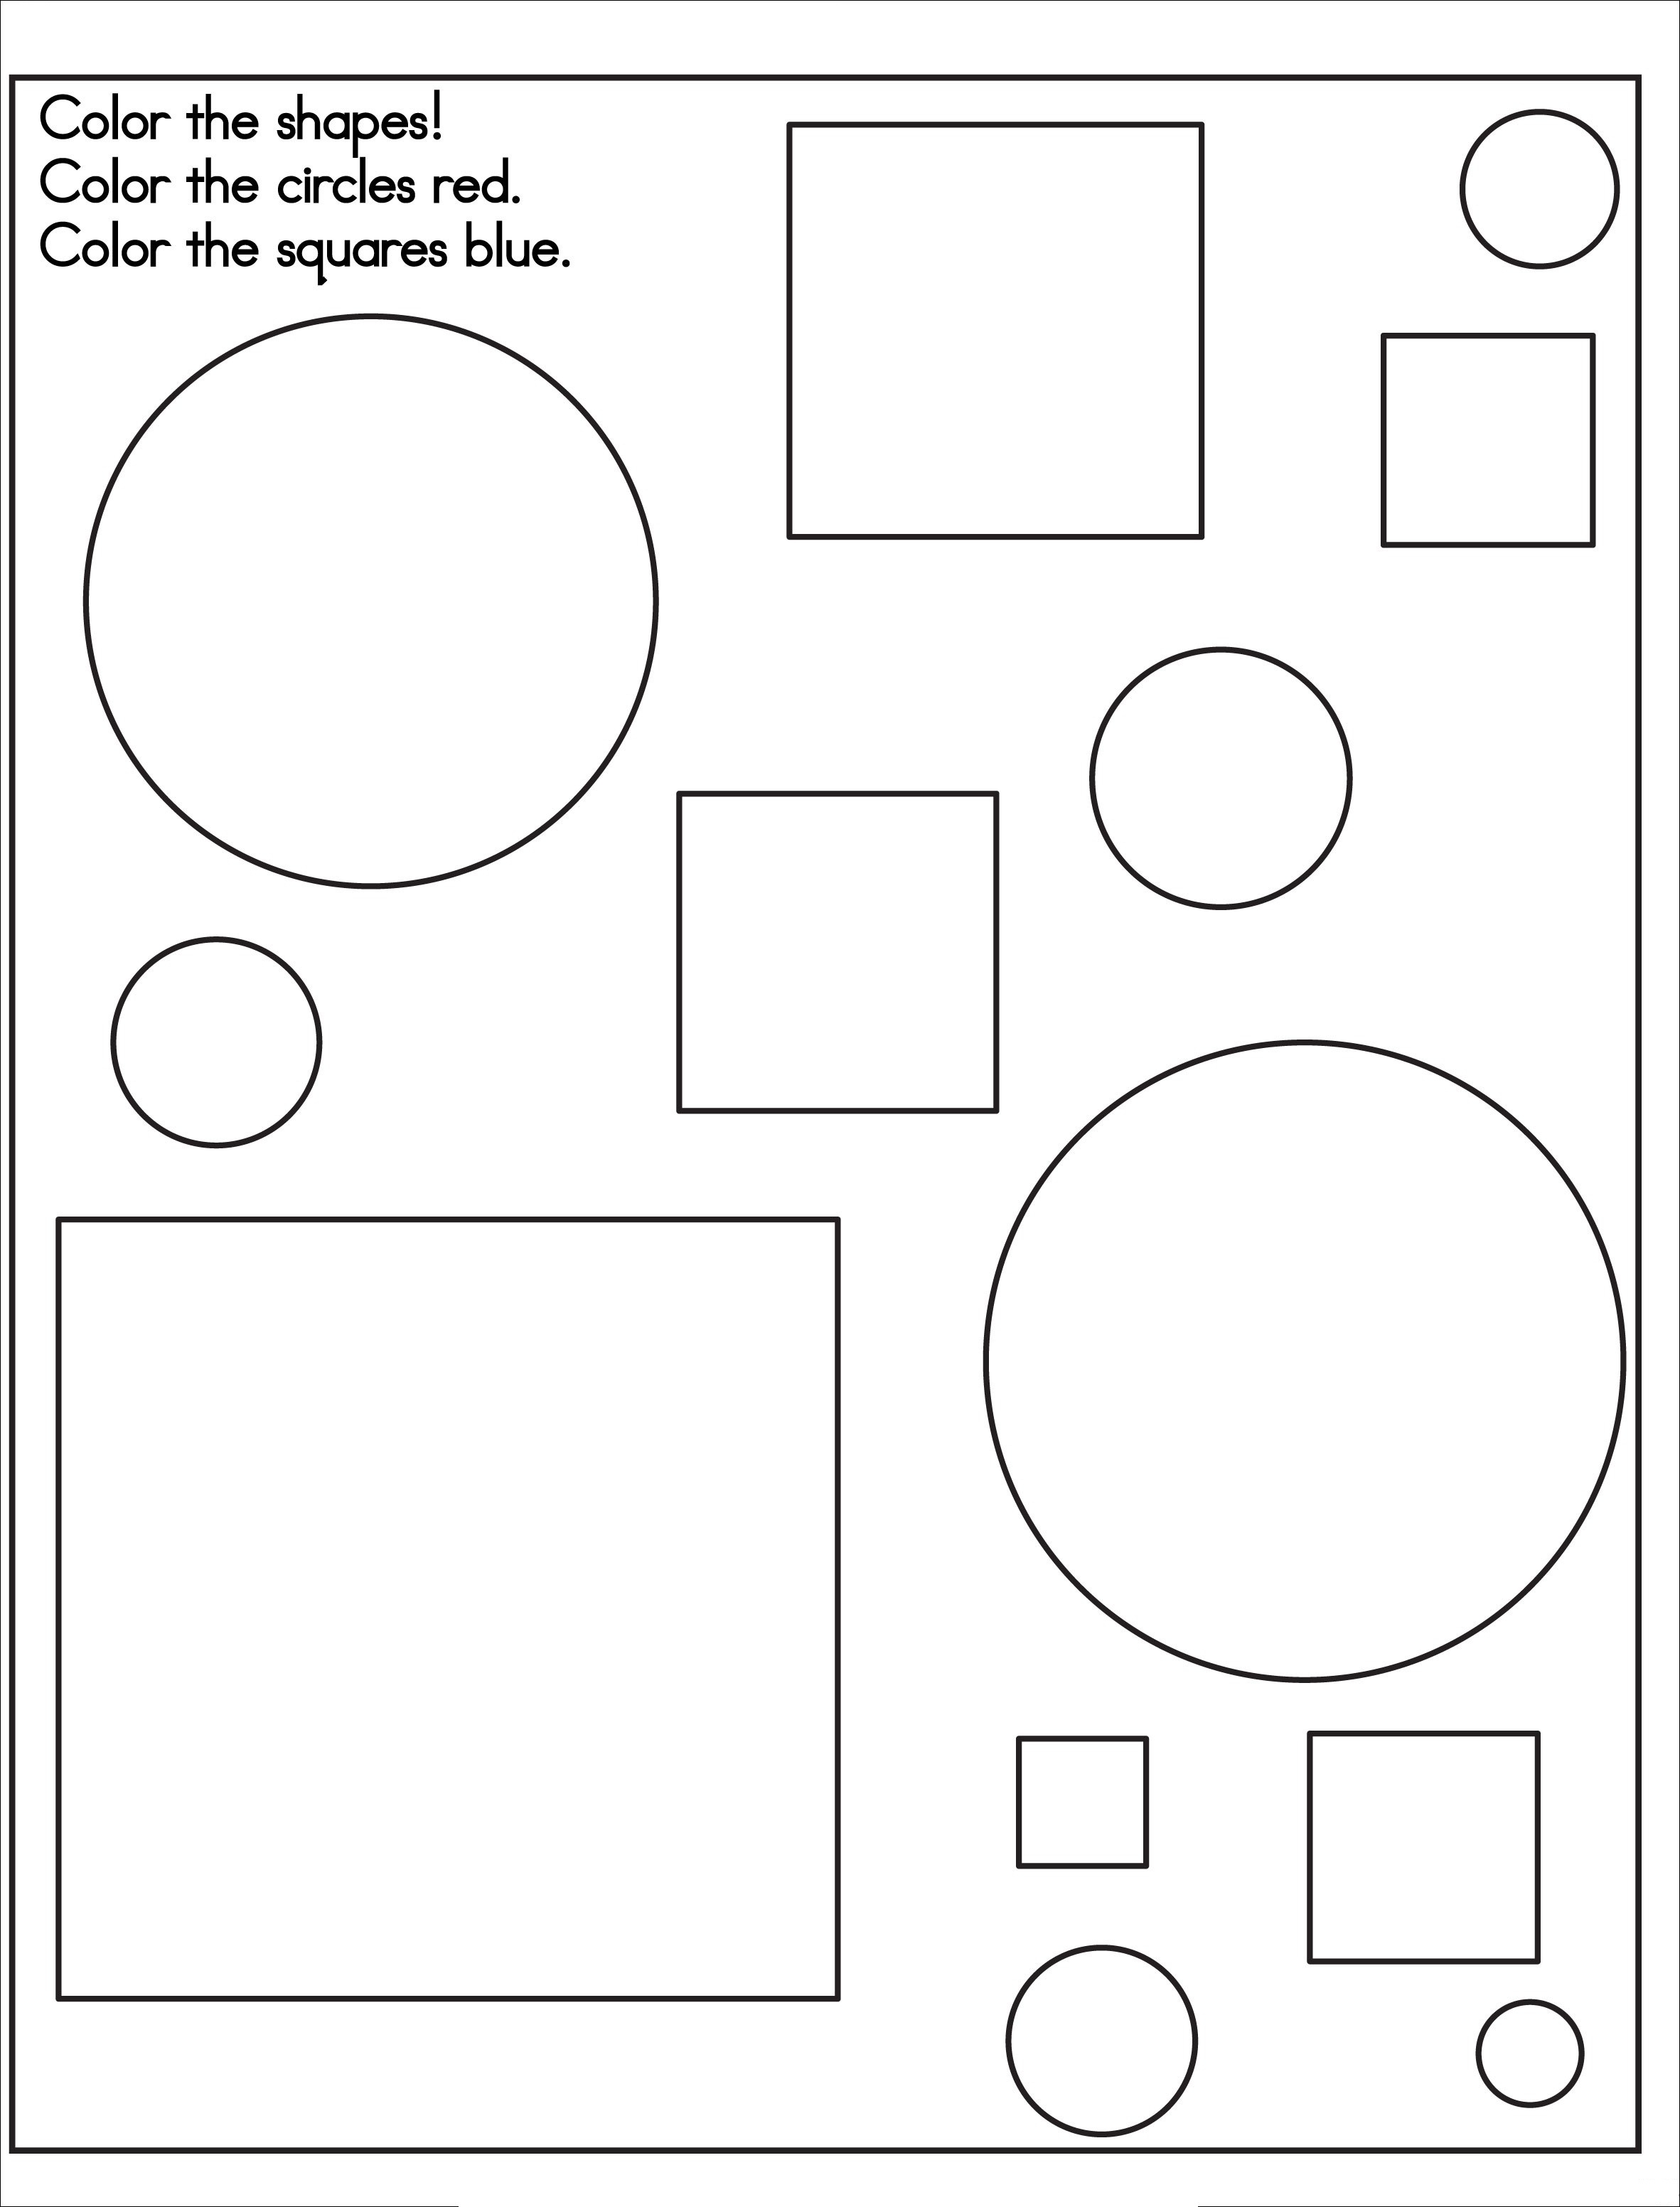 Printable Shapes Coloring Pages Kids